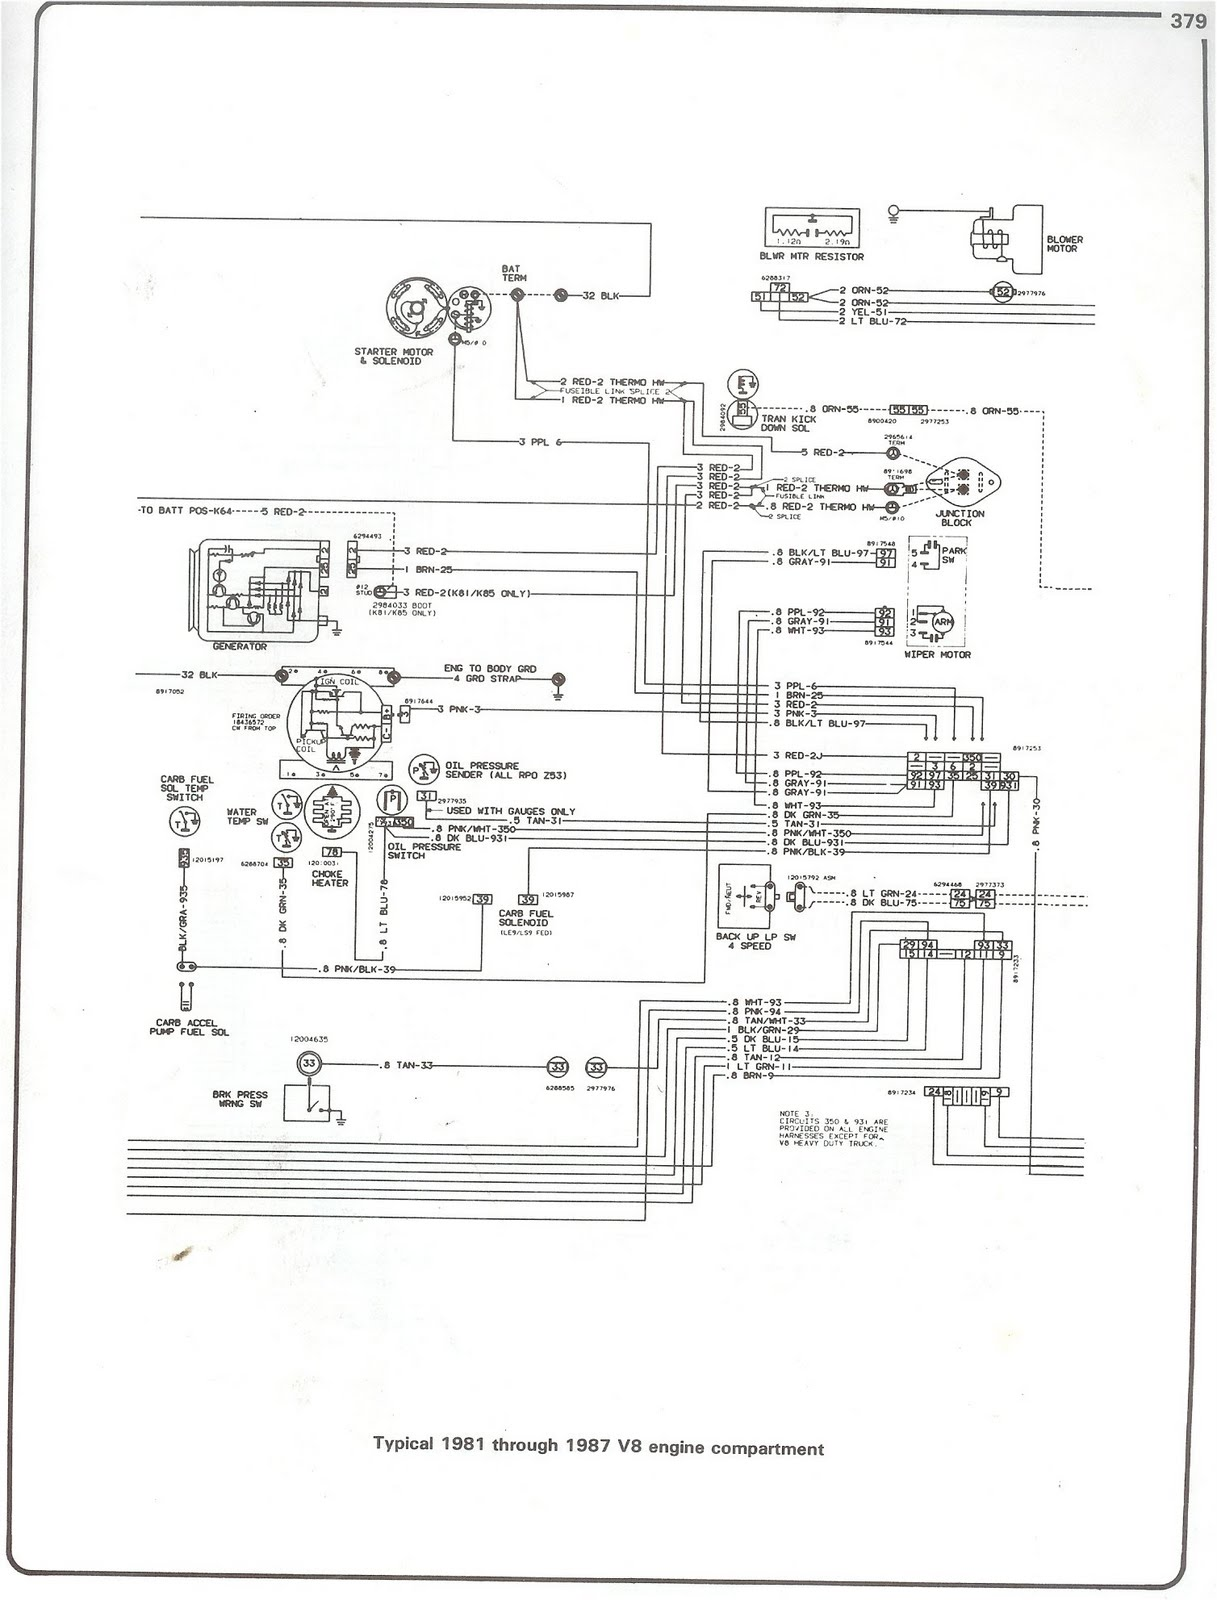 81 87_chevy_truck_V8_engine free auto wiring diagram 1981 1987 chevrolet v8 truck engine 1979 Chevrolet Wiring Diagram at edmiracle.co